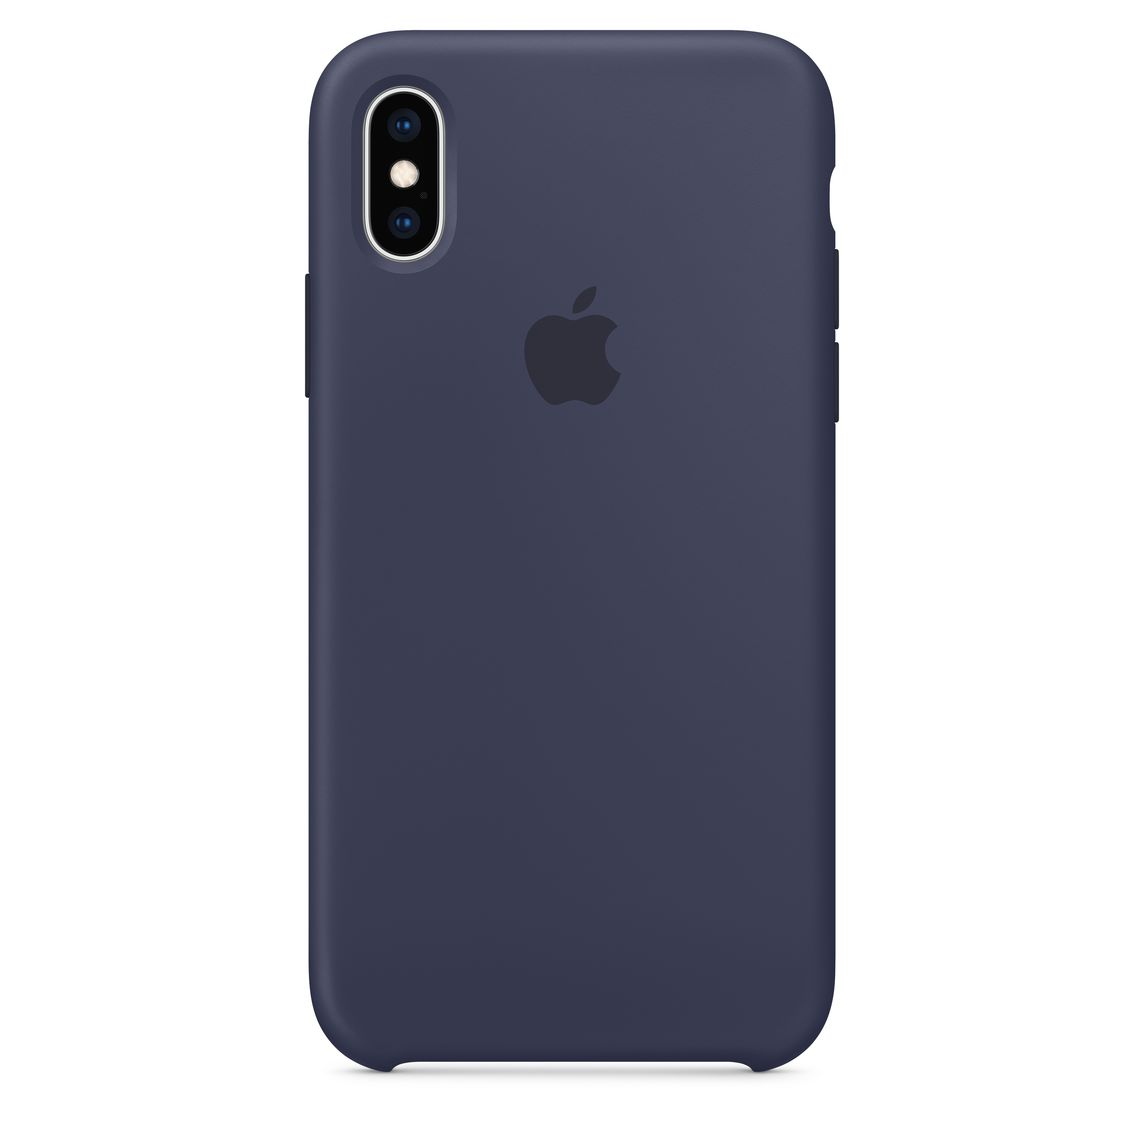 size 40 a24bb e0ebd iPhone XS Silicone Case — Midnight Blue